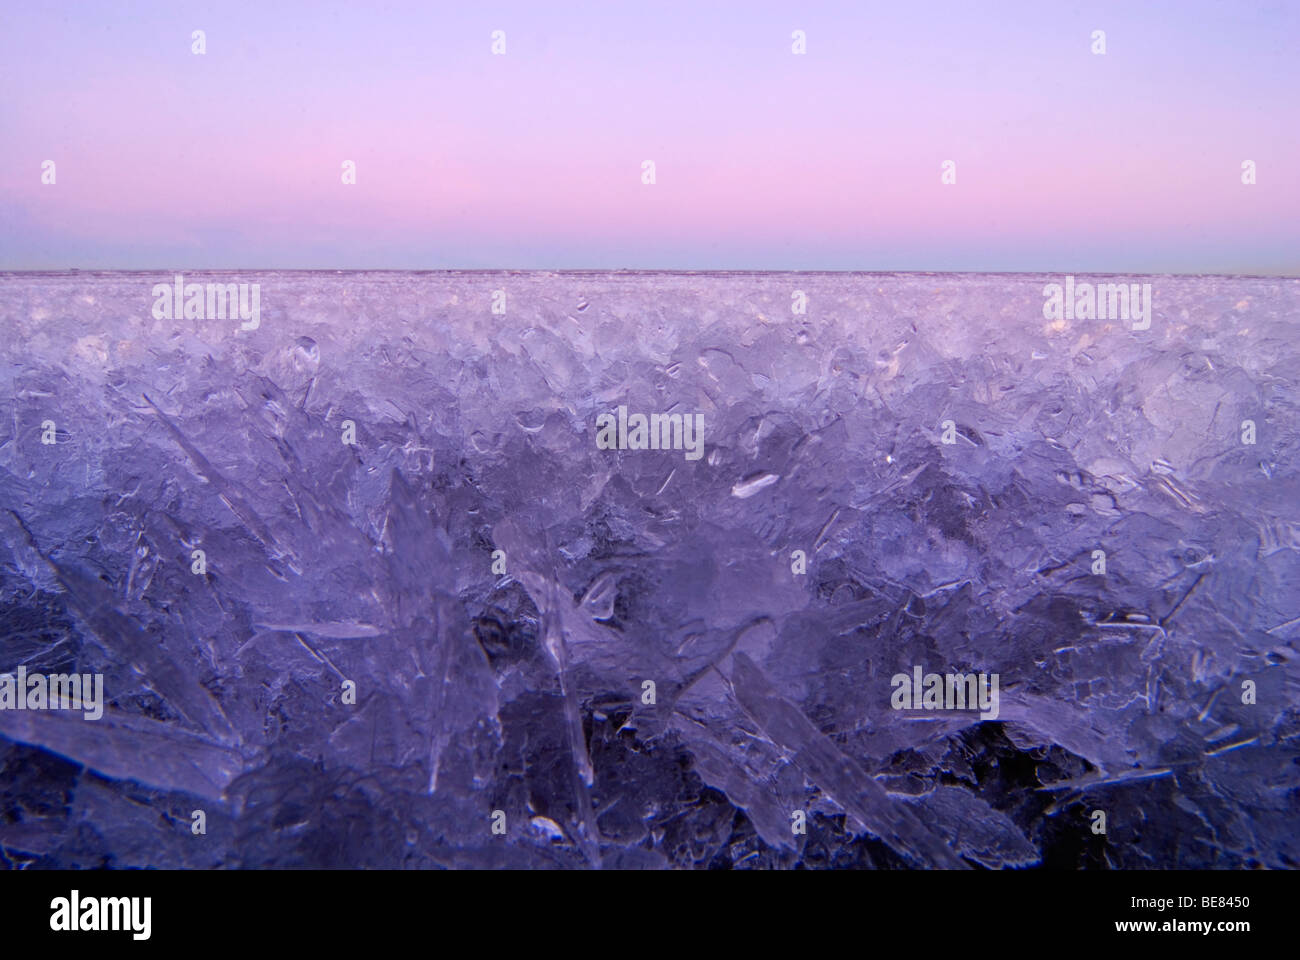 tidal flats of the kwade hoek nature reserve after sunset with ice cristals - Stock Image